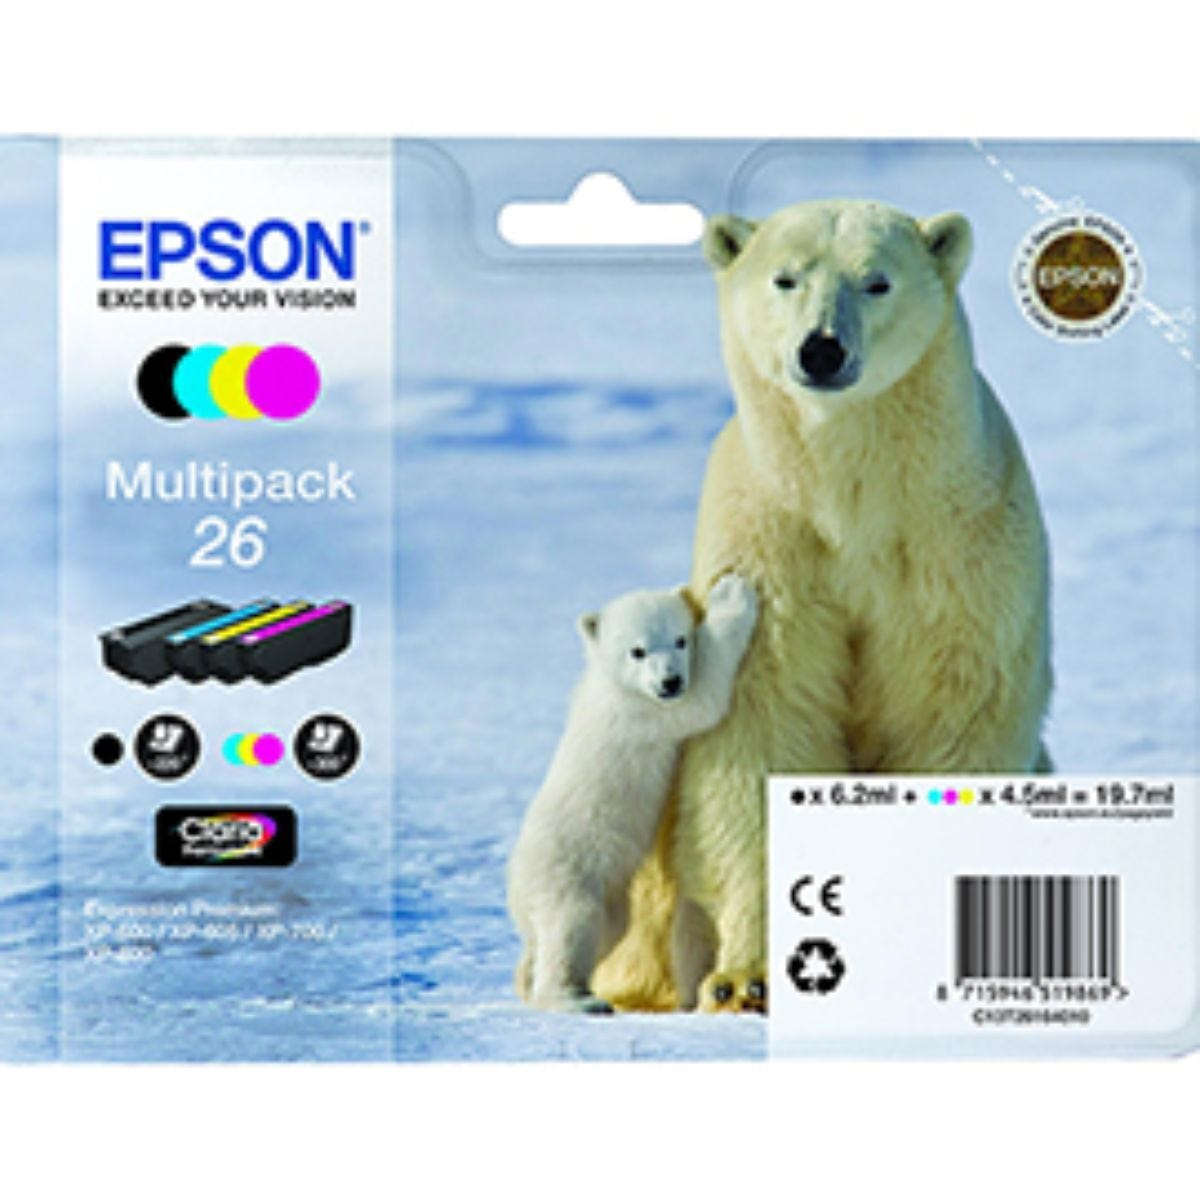 Epson T261 4 Ink Multi Pack